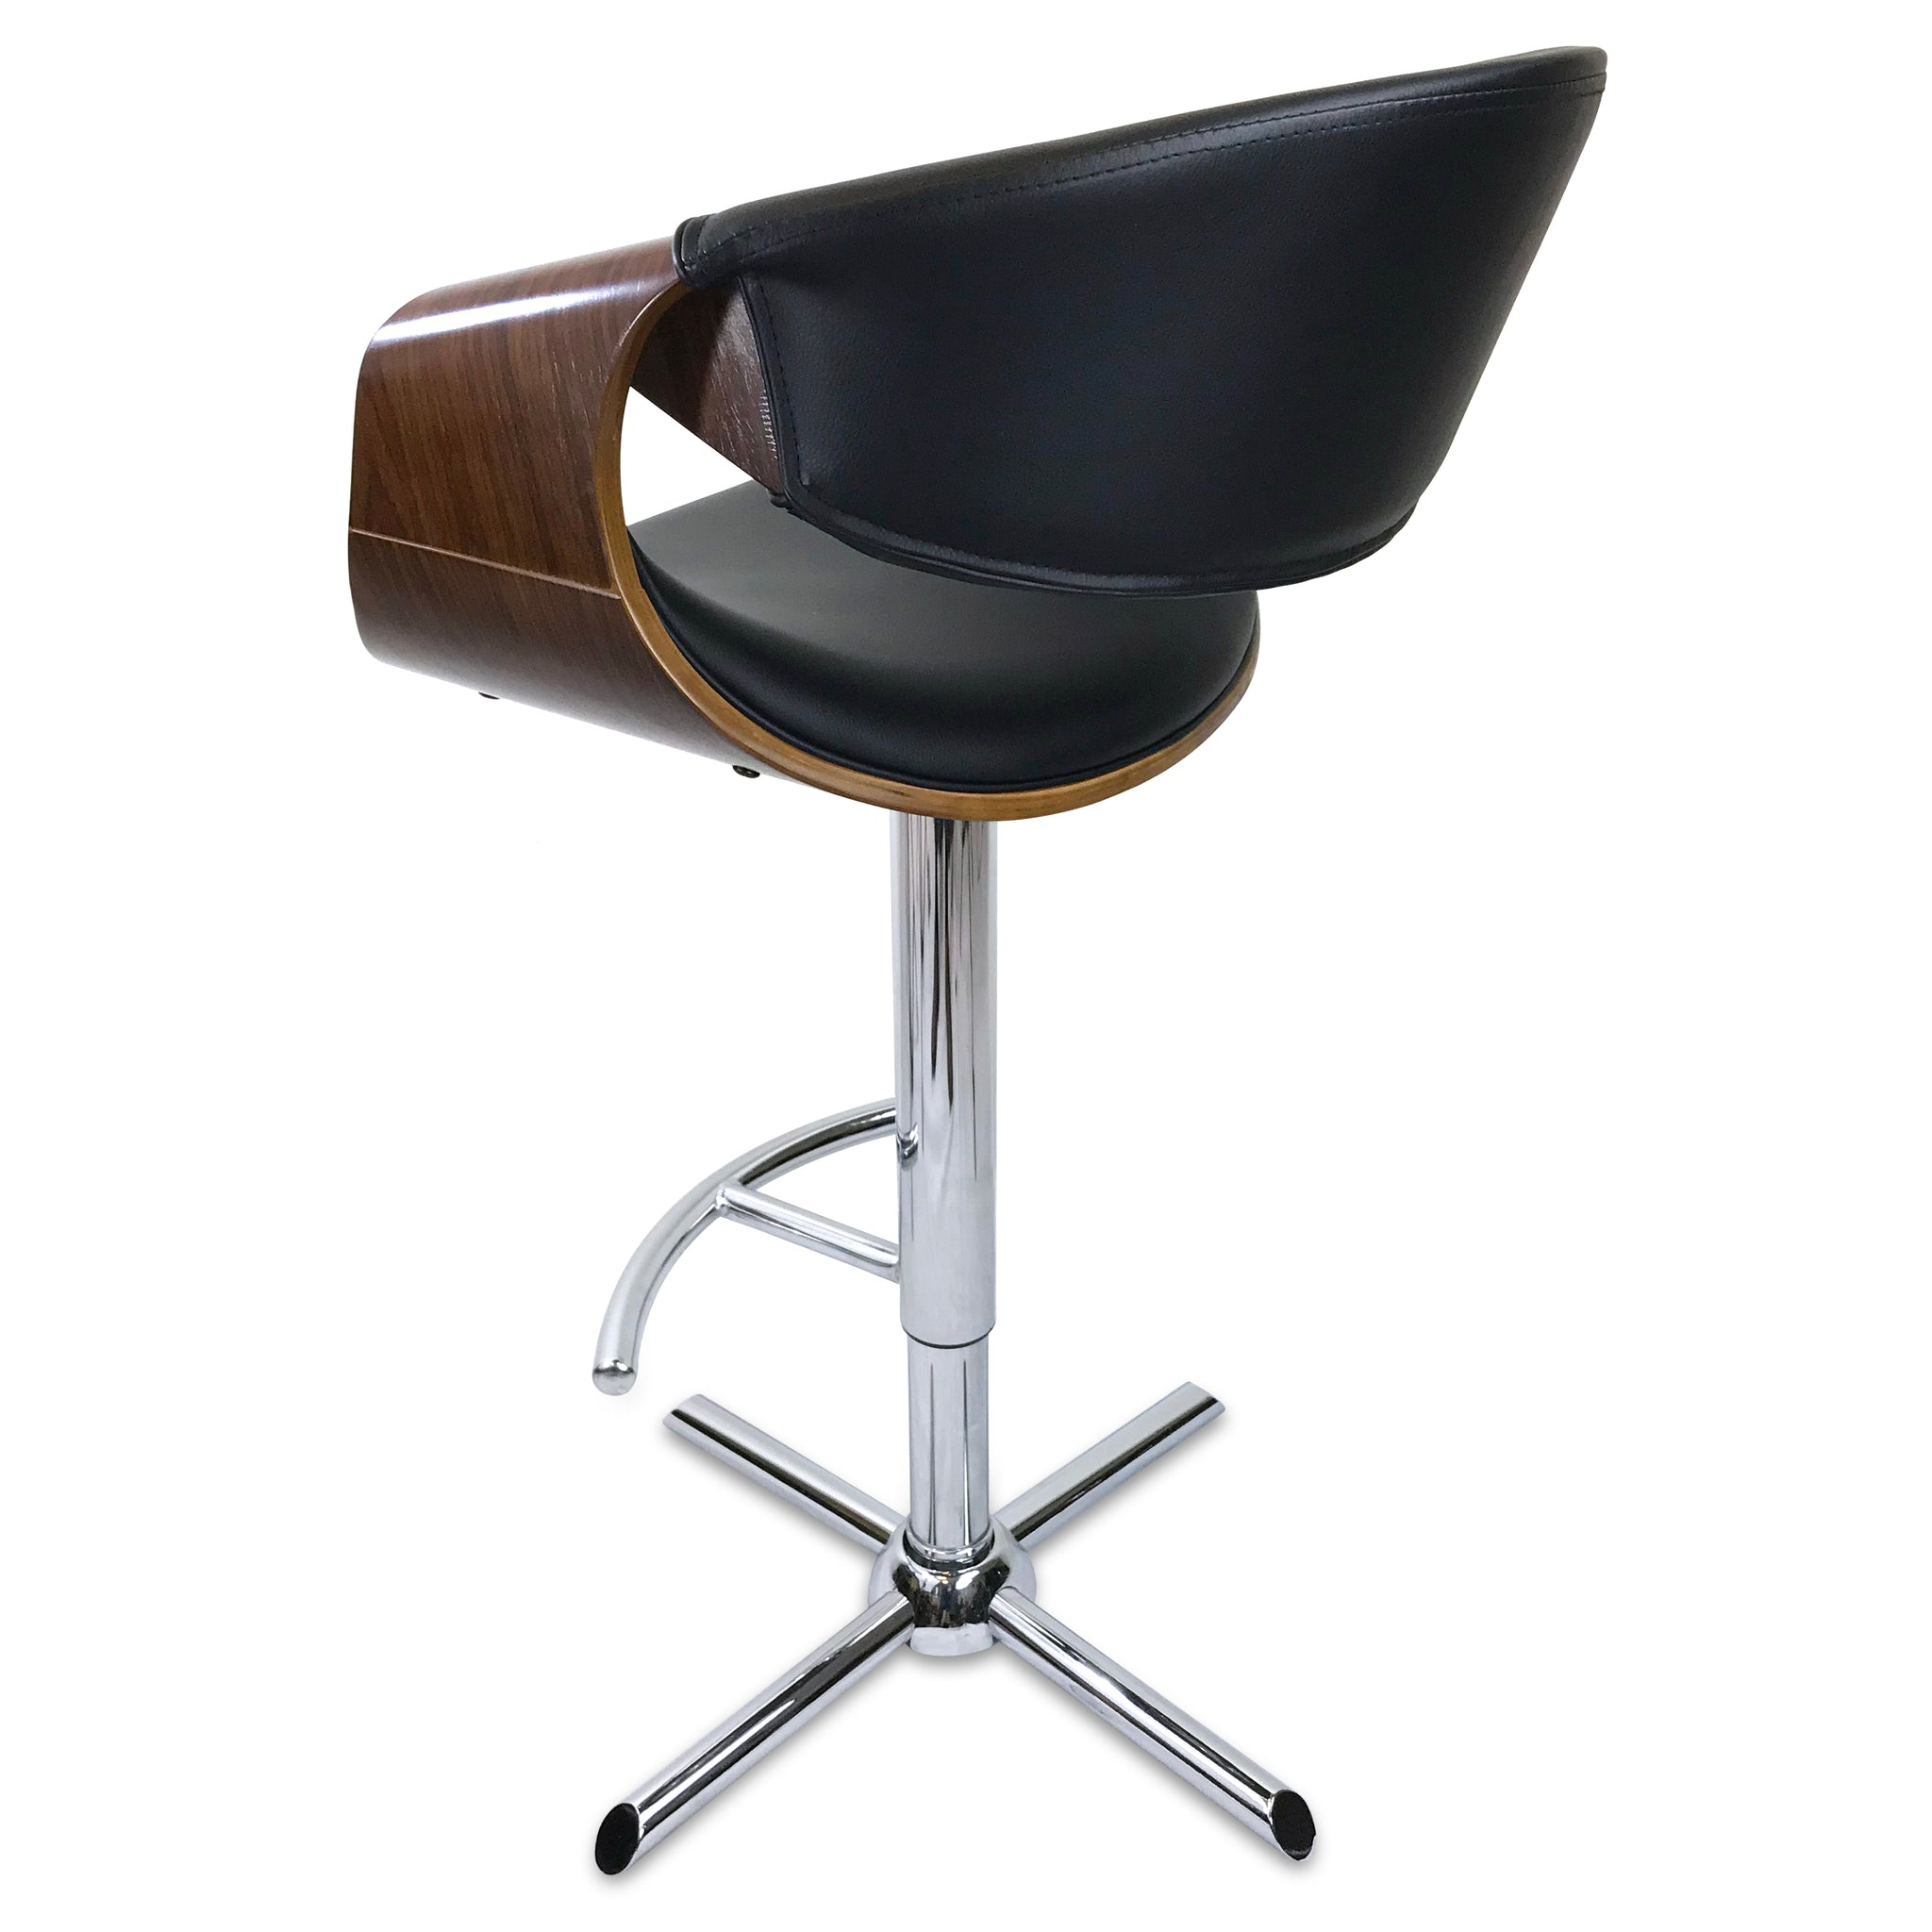 Phenomenal Max Leather Bar Stool In Walnut Black Andrewgaddart Wooden Chair Designs For Living Room Andrewgaddartcom